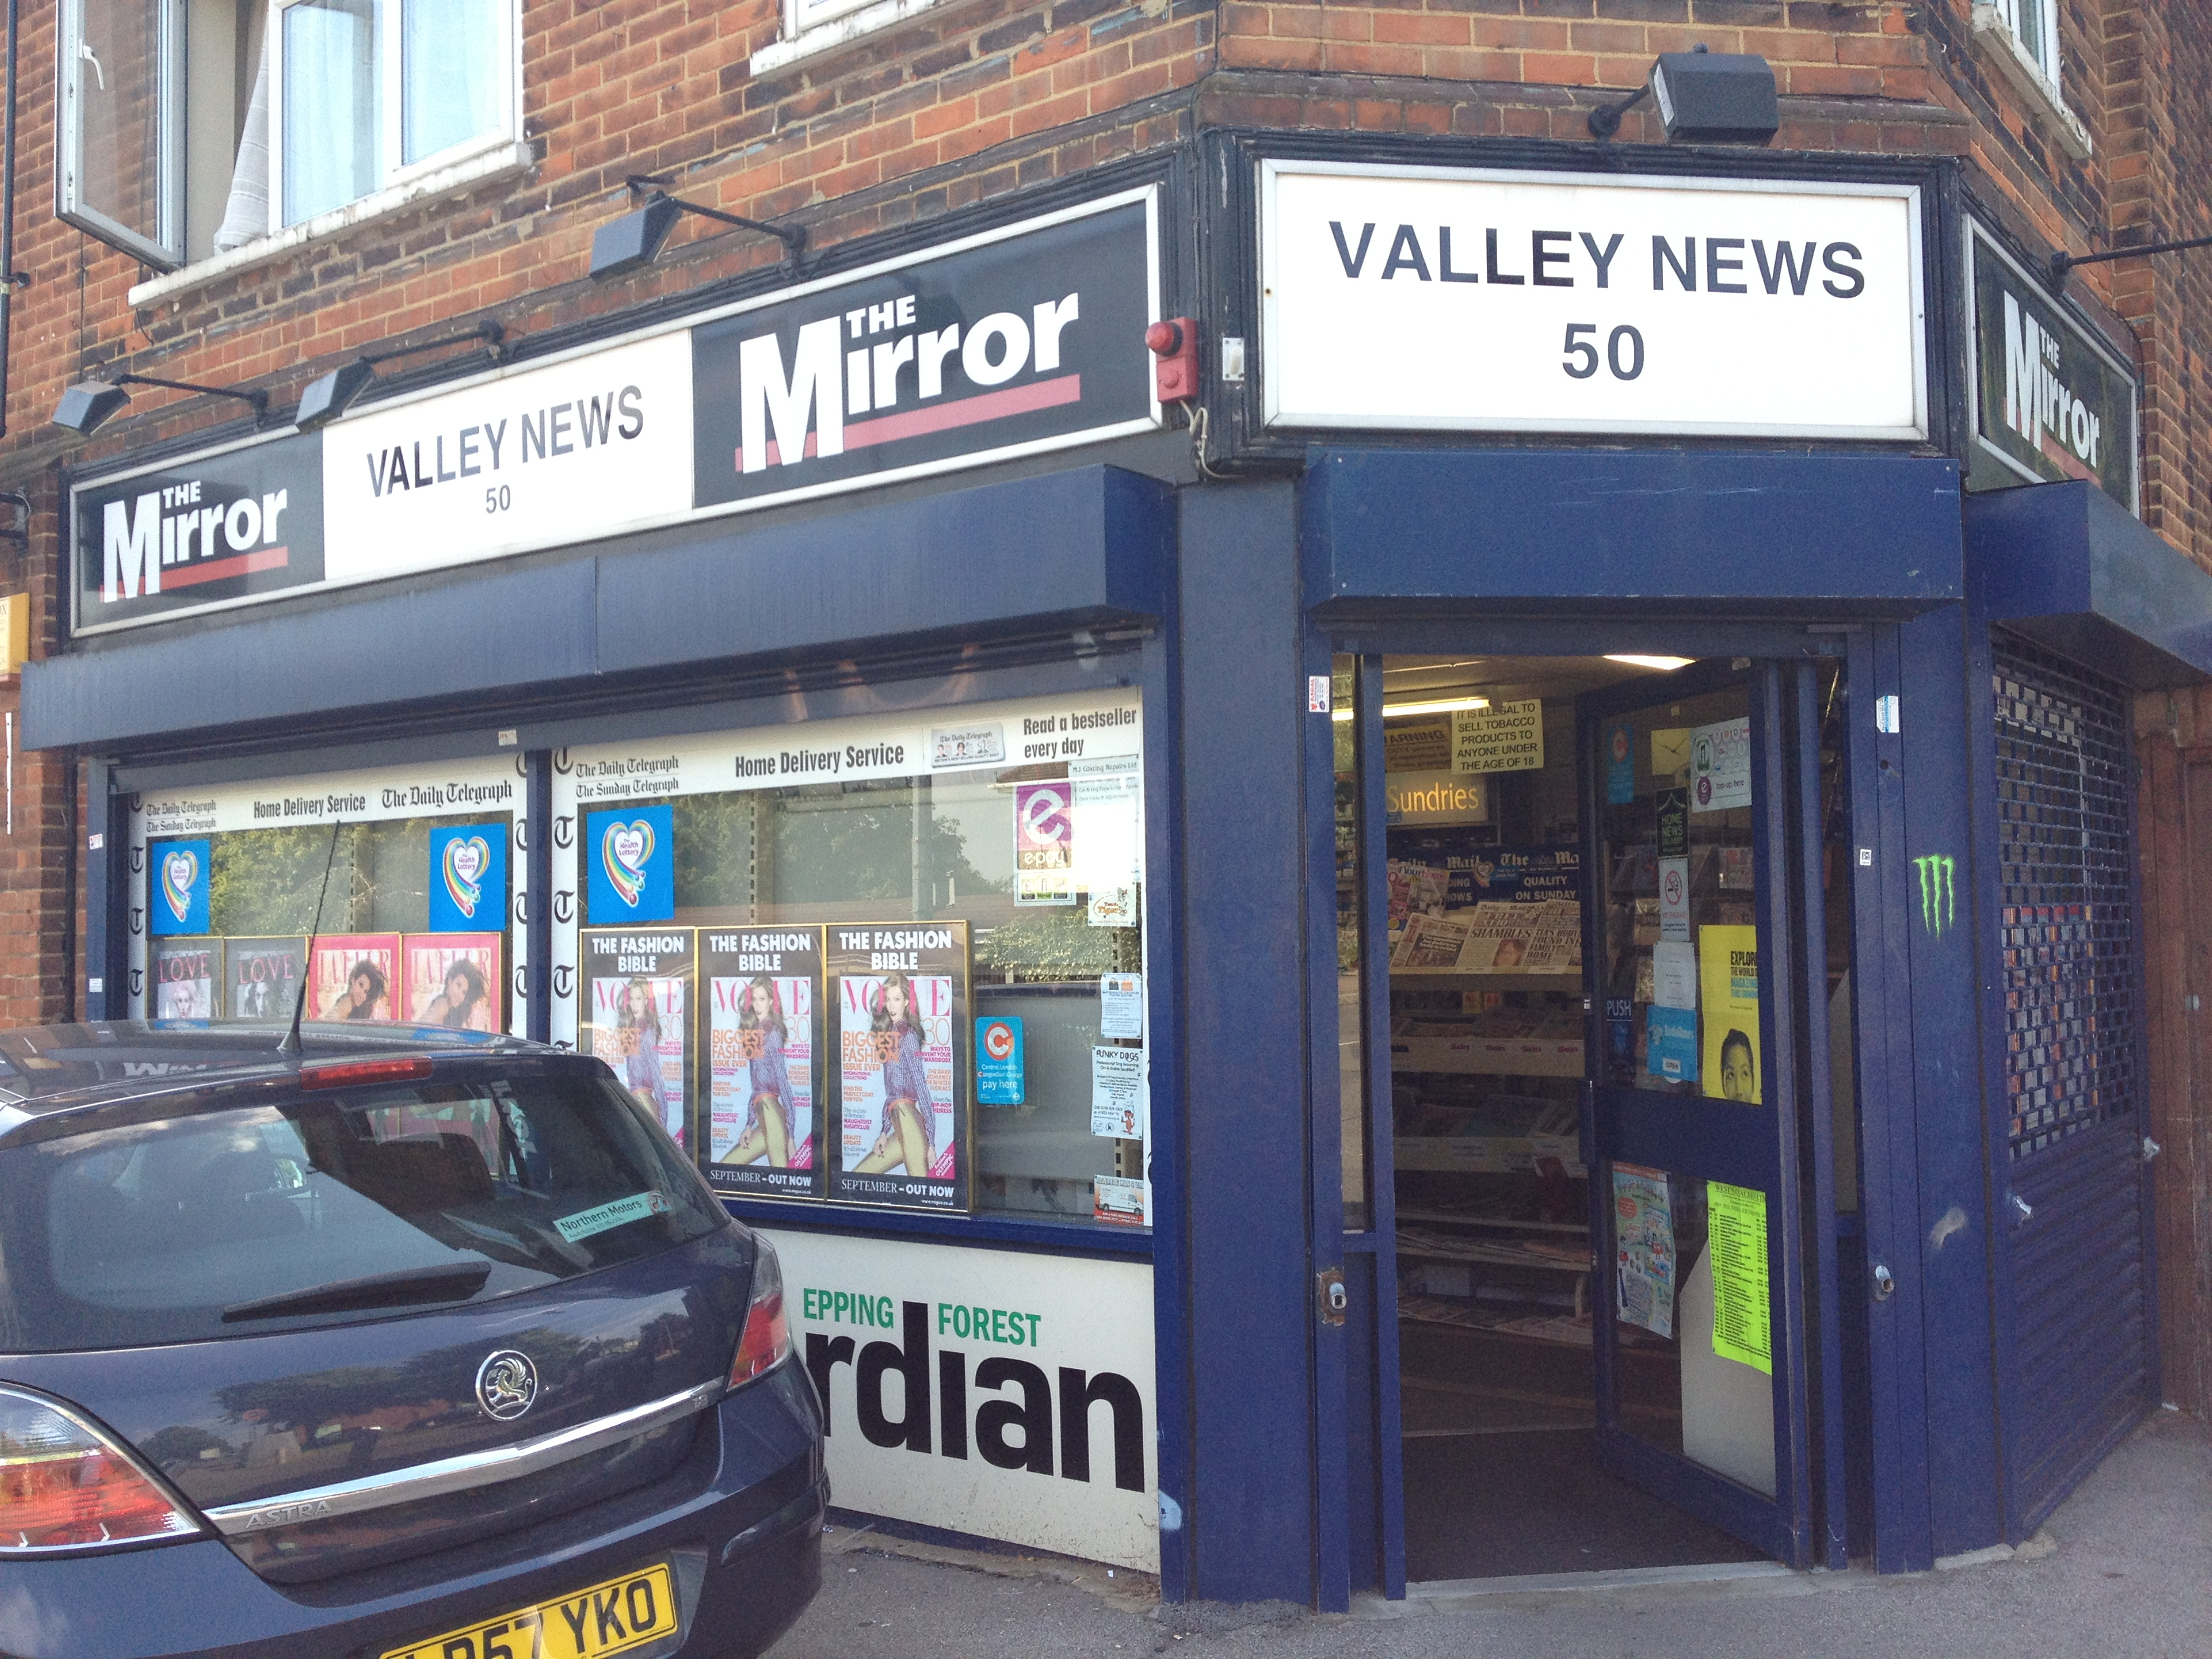 Valley News in Buckhurst Hill